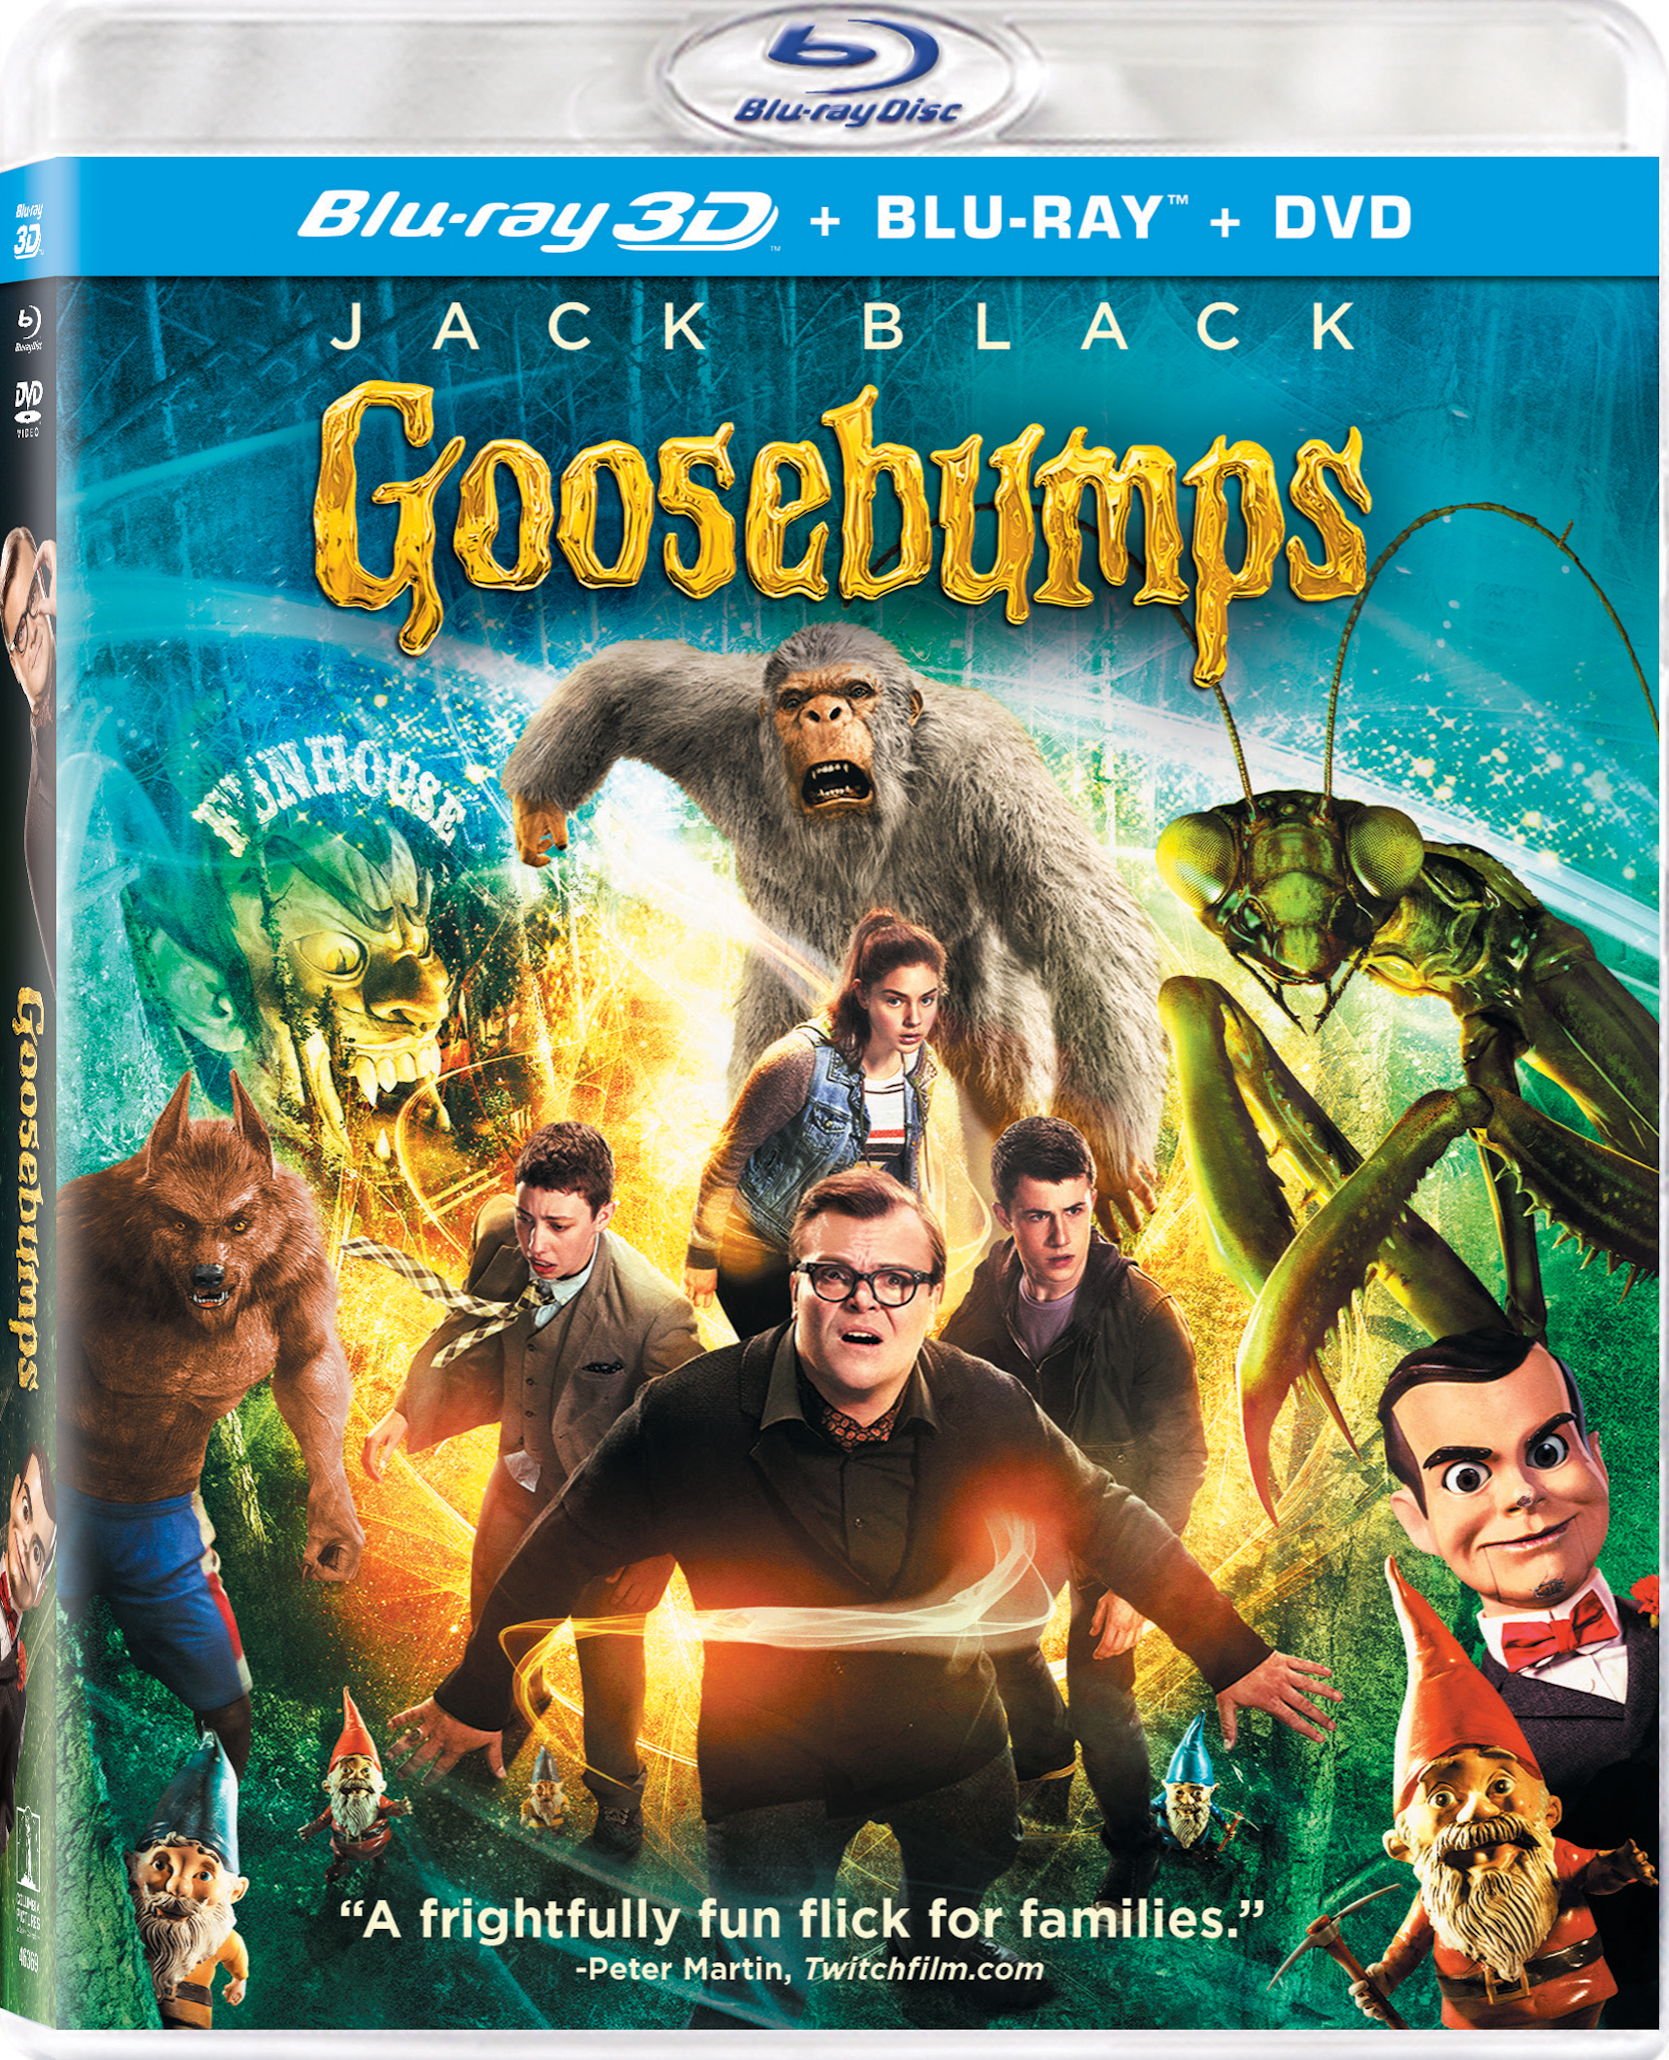 Goosebumps 3D (2015) Blu-ray